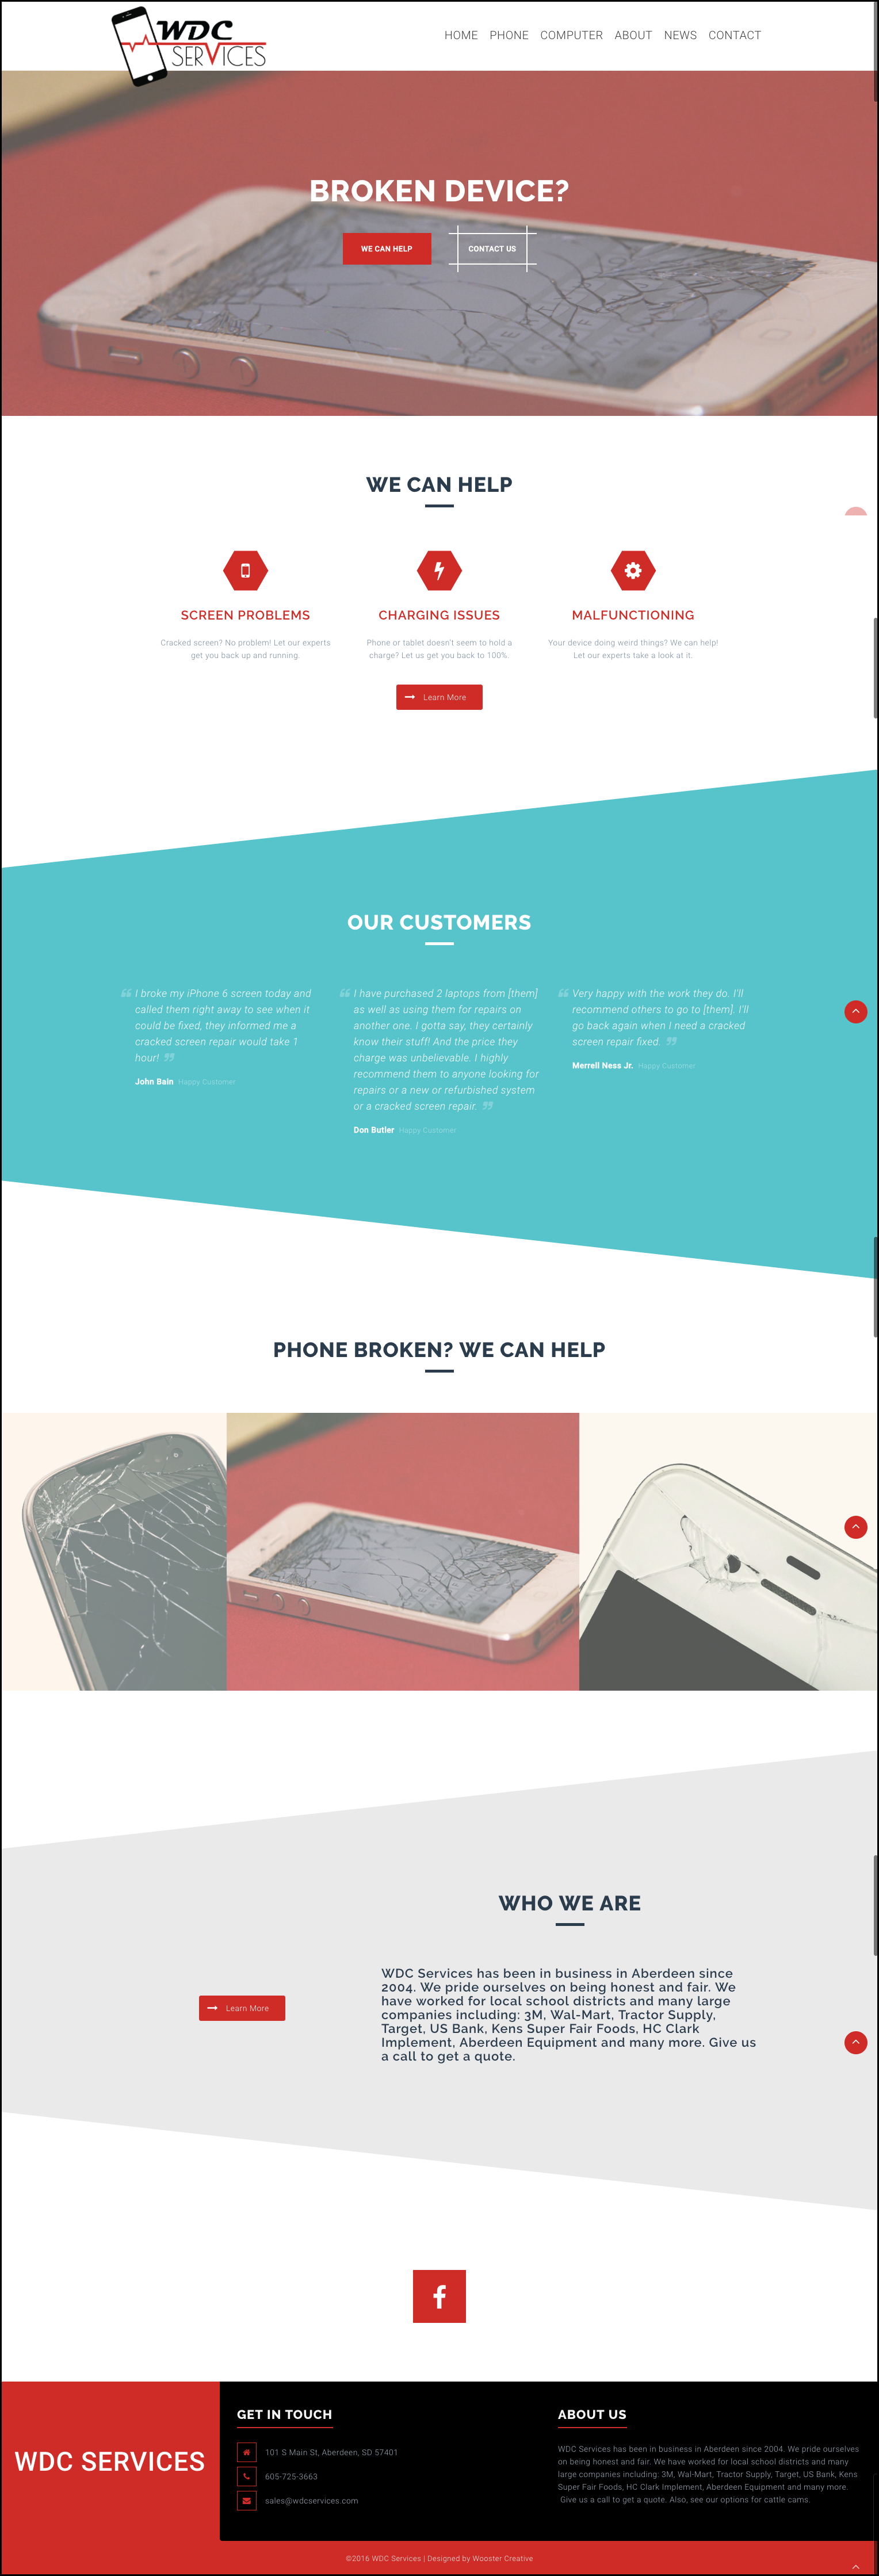 wdc-services-webdesign-wooster-creative-2-1